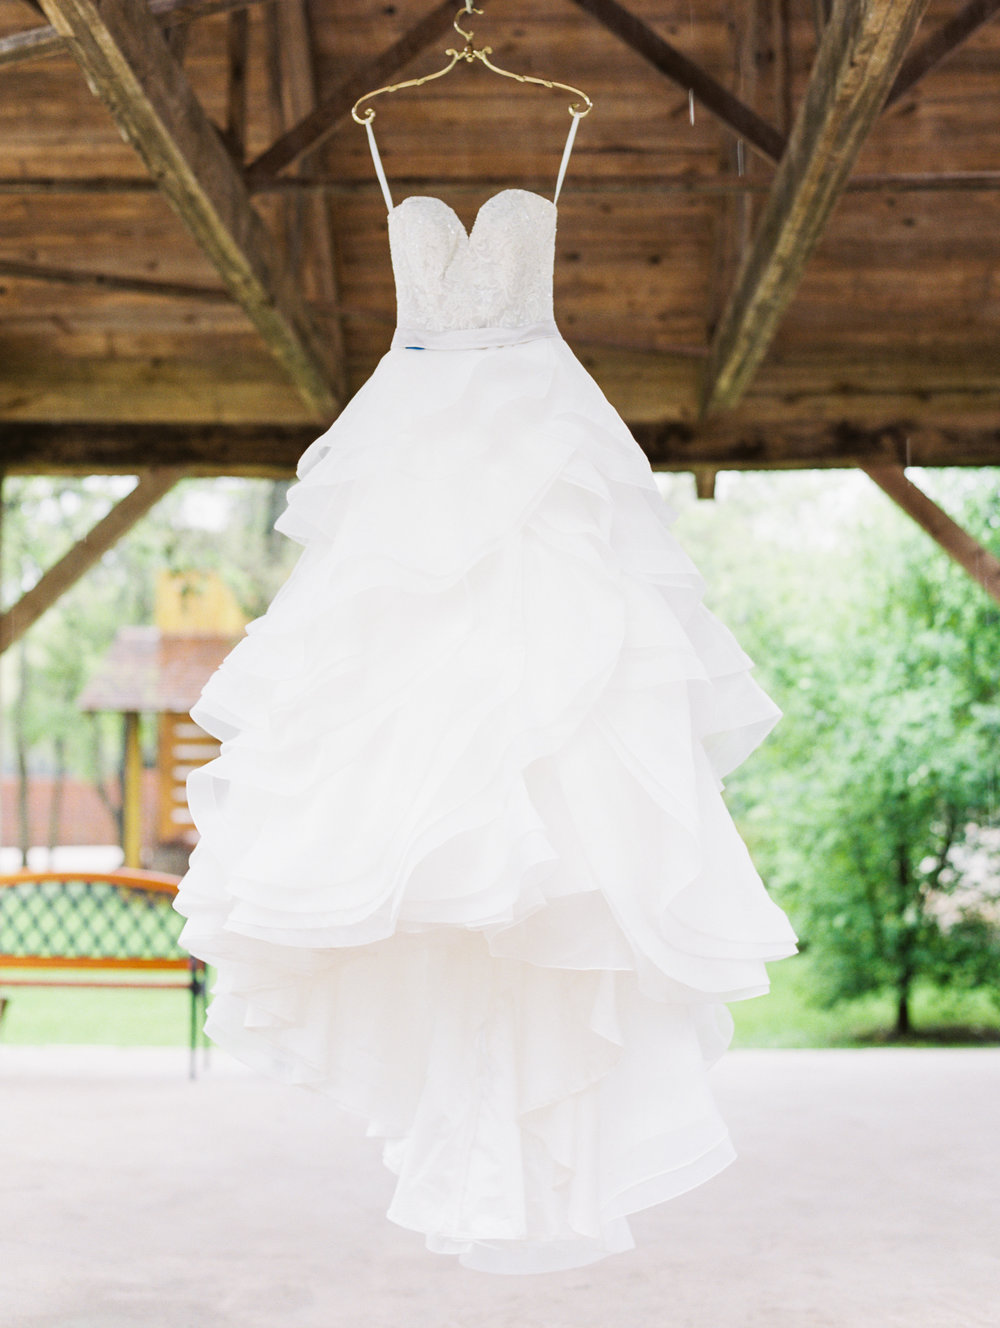 Hill Country Spring Wedding at Red Bud Hall | Austin Wedding Photographer | Film Wedding Photographer | Britni Dean Photography | Rainy Day Wedding Inspiration | ruffle wedding gown